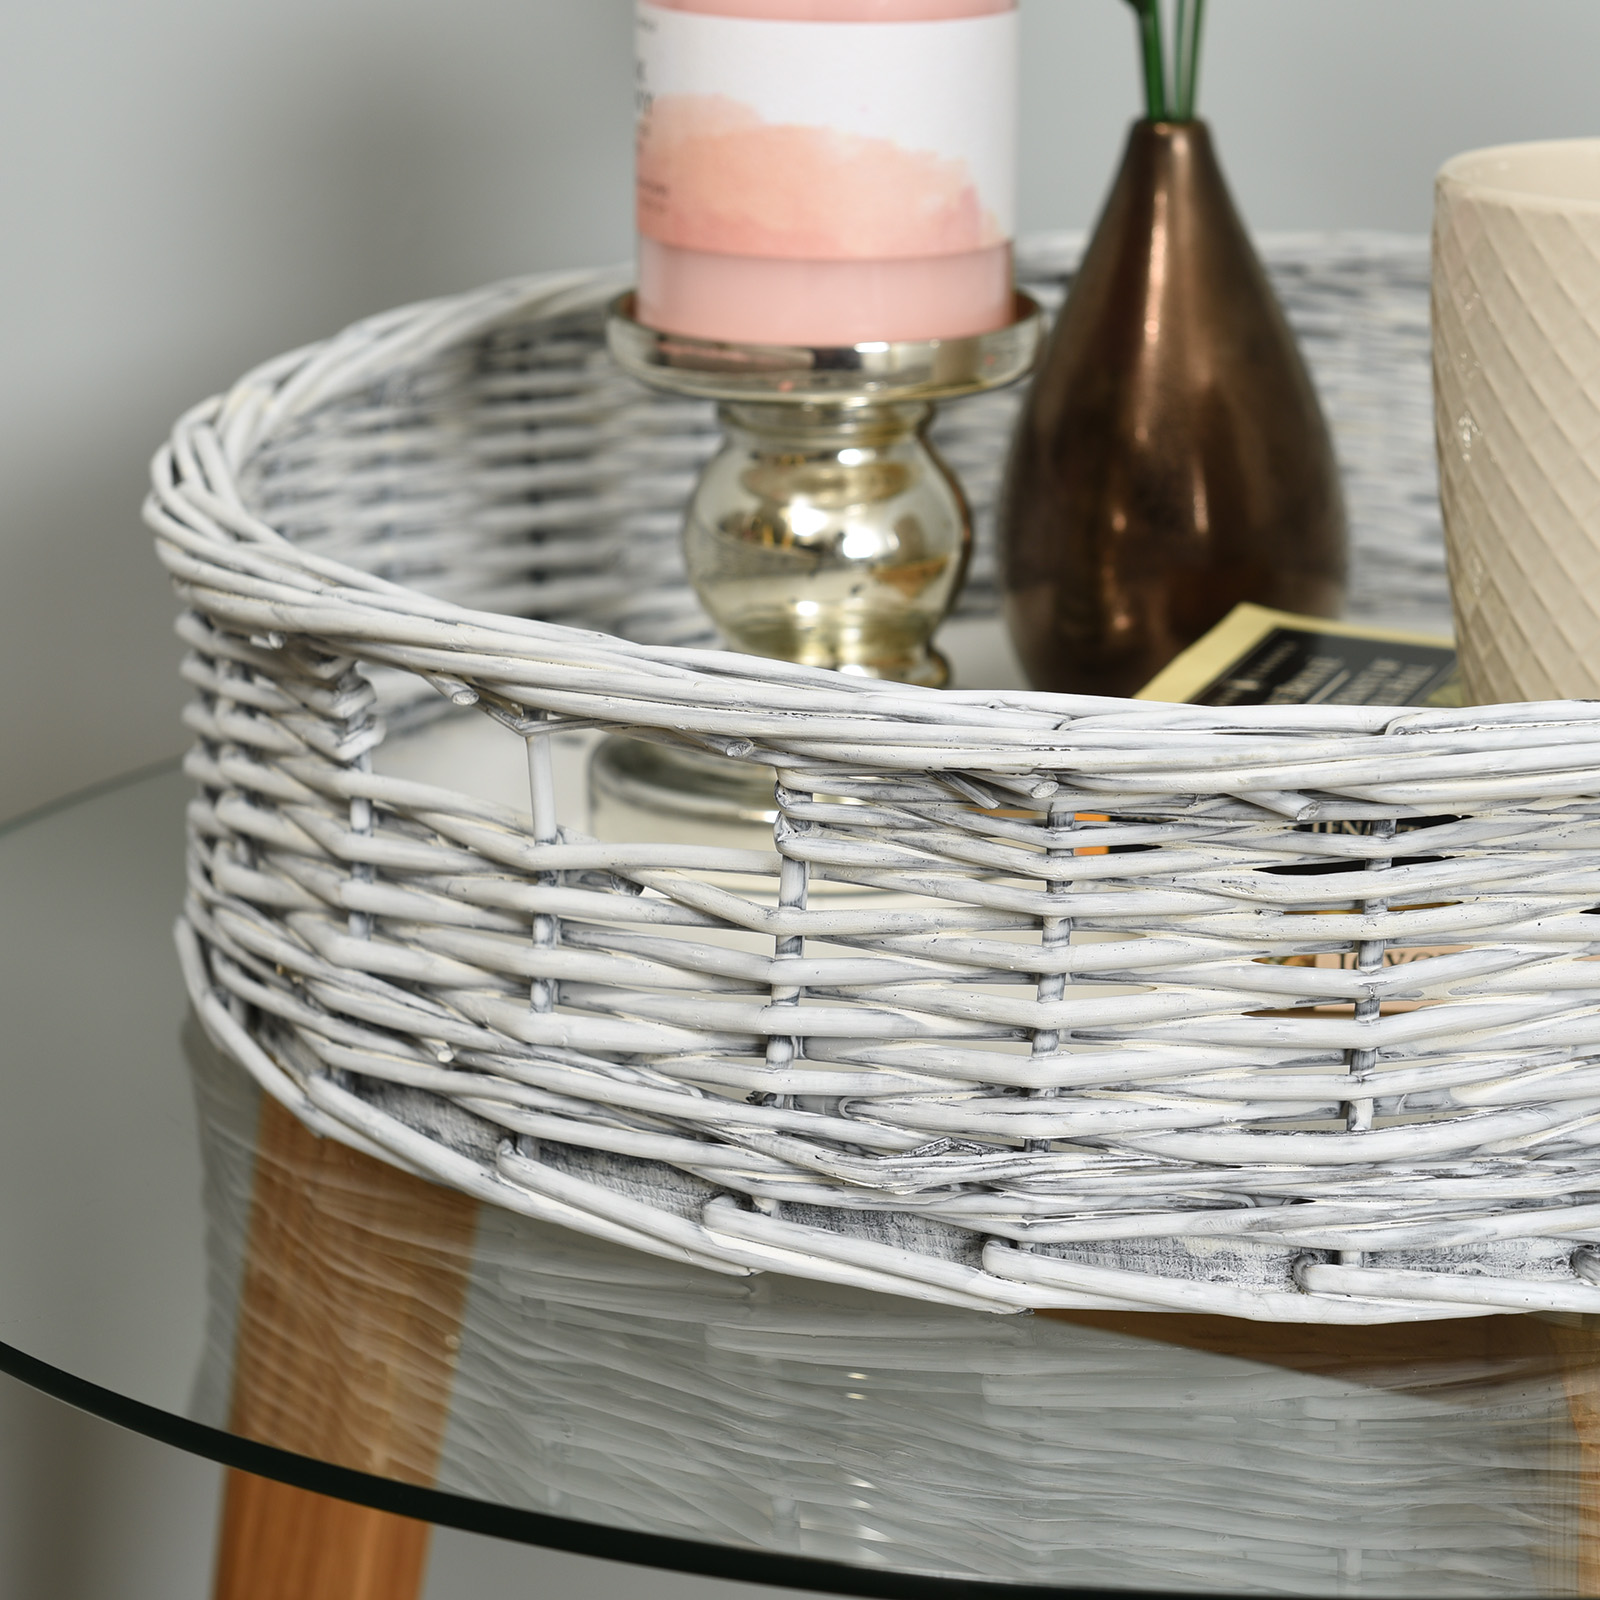 Hartleys-Round-Wicker-Serving-Tray-Decorative-Wooden-Platter-Coffee-Table-Decor thumbnail 11